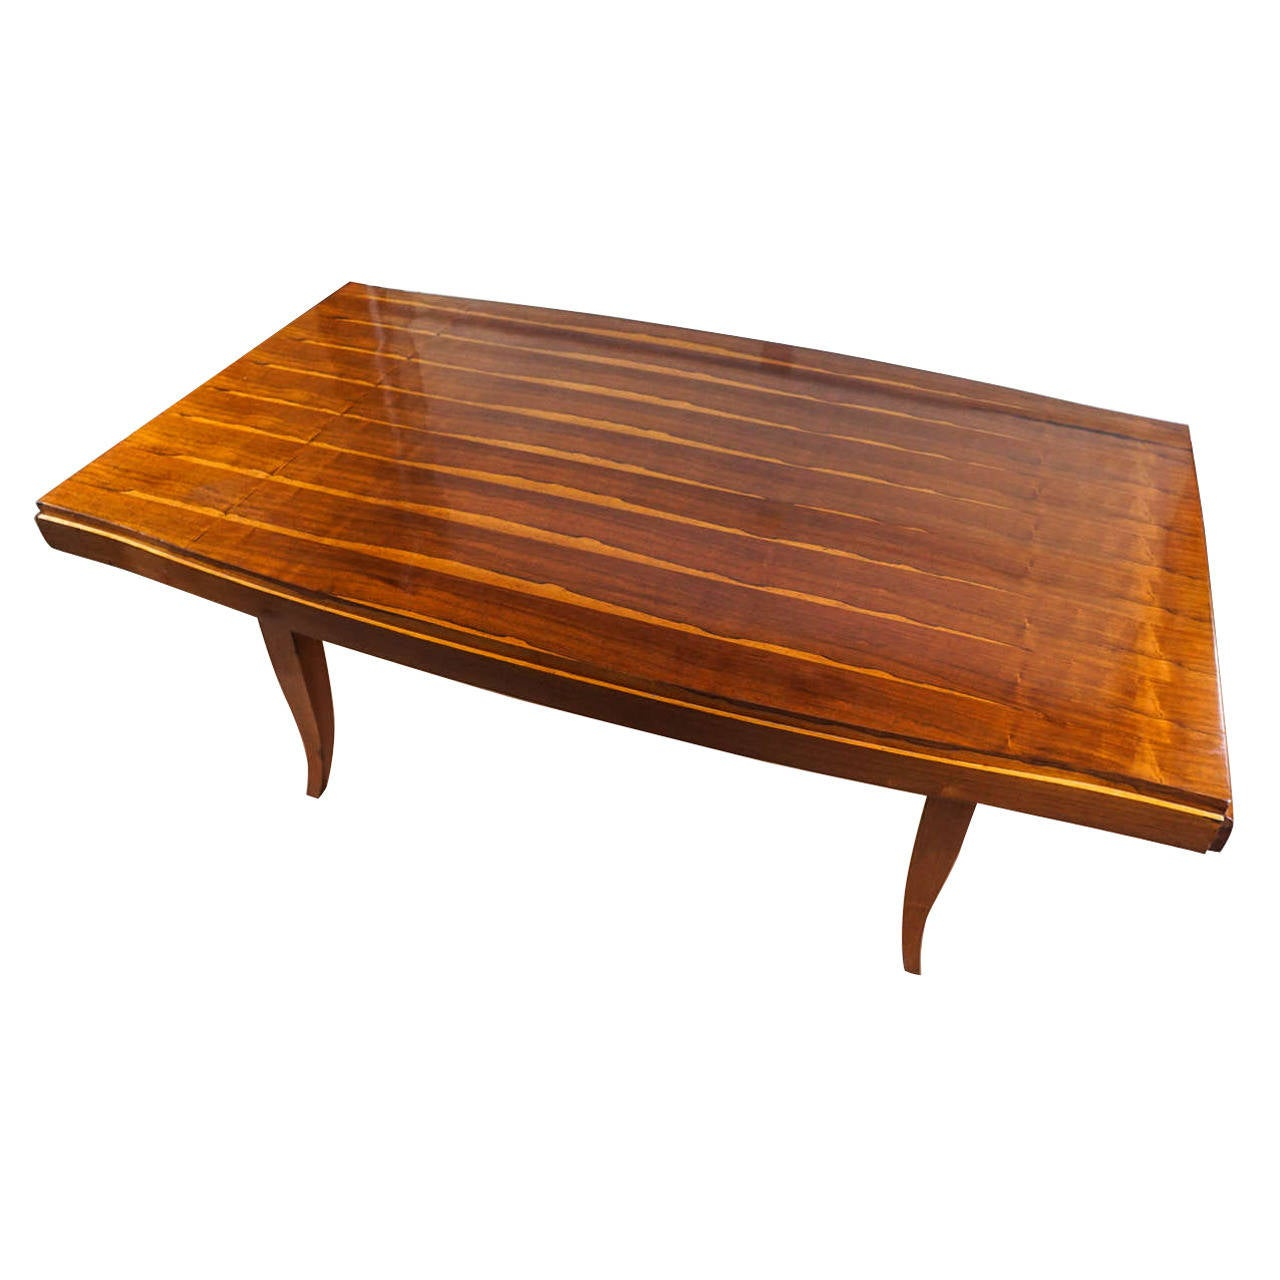 French Art Deco Inlaid Rosewood Dining Room Table At 1stdibs